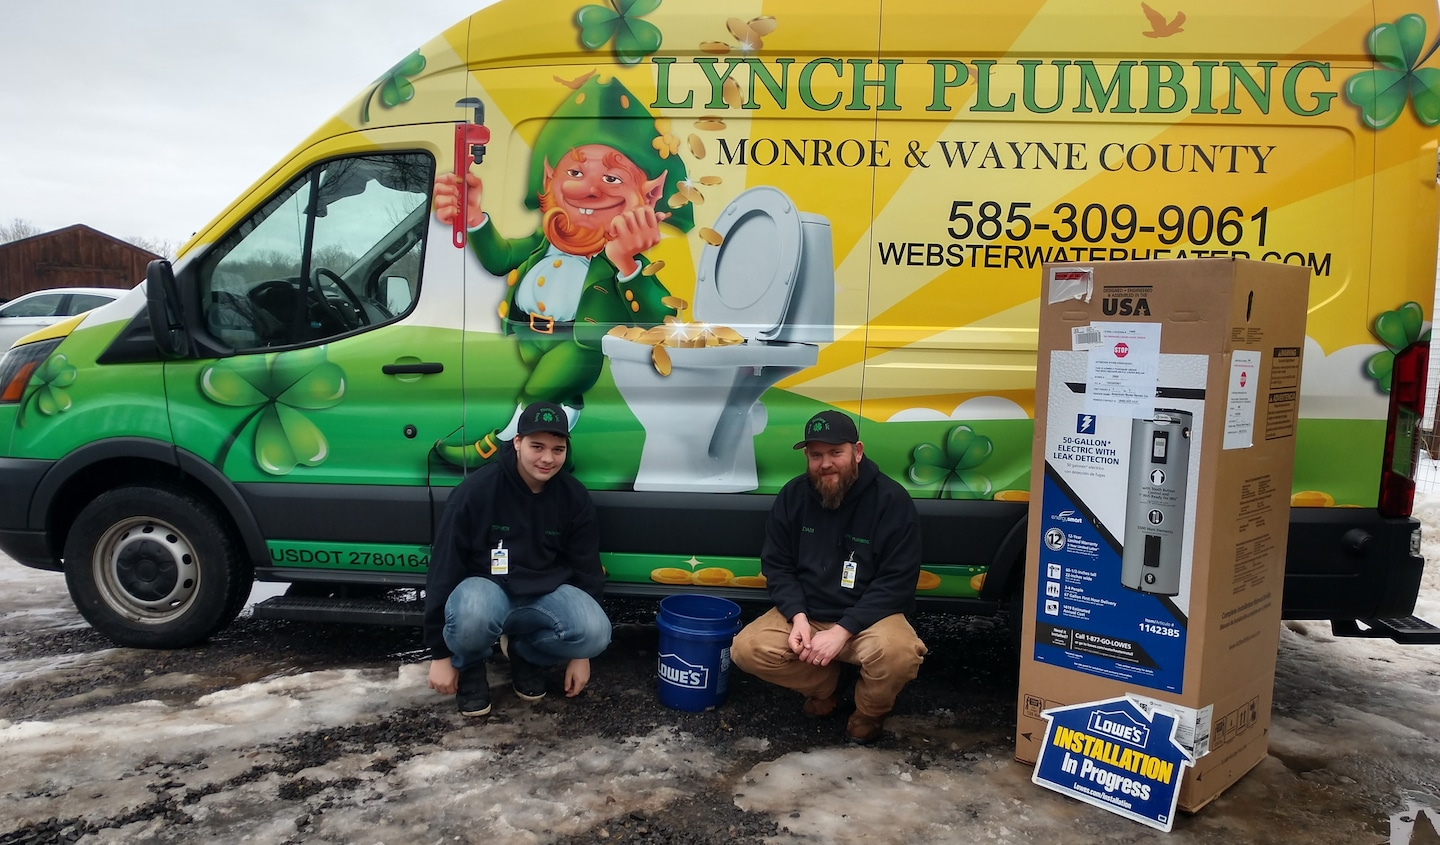 Lynch Plumbing LLC